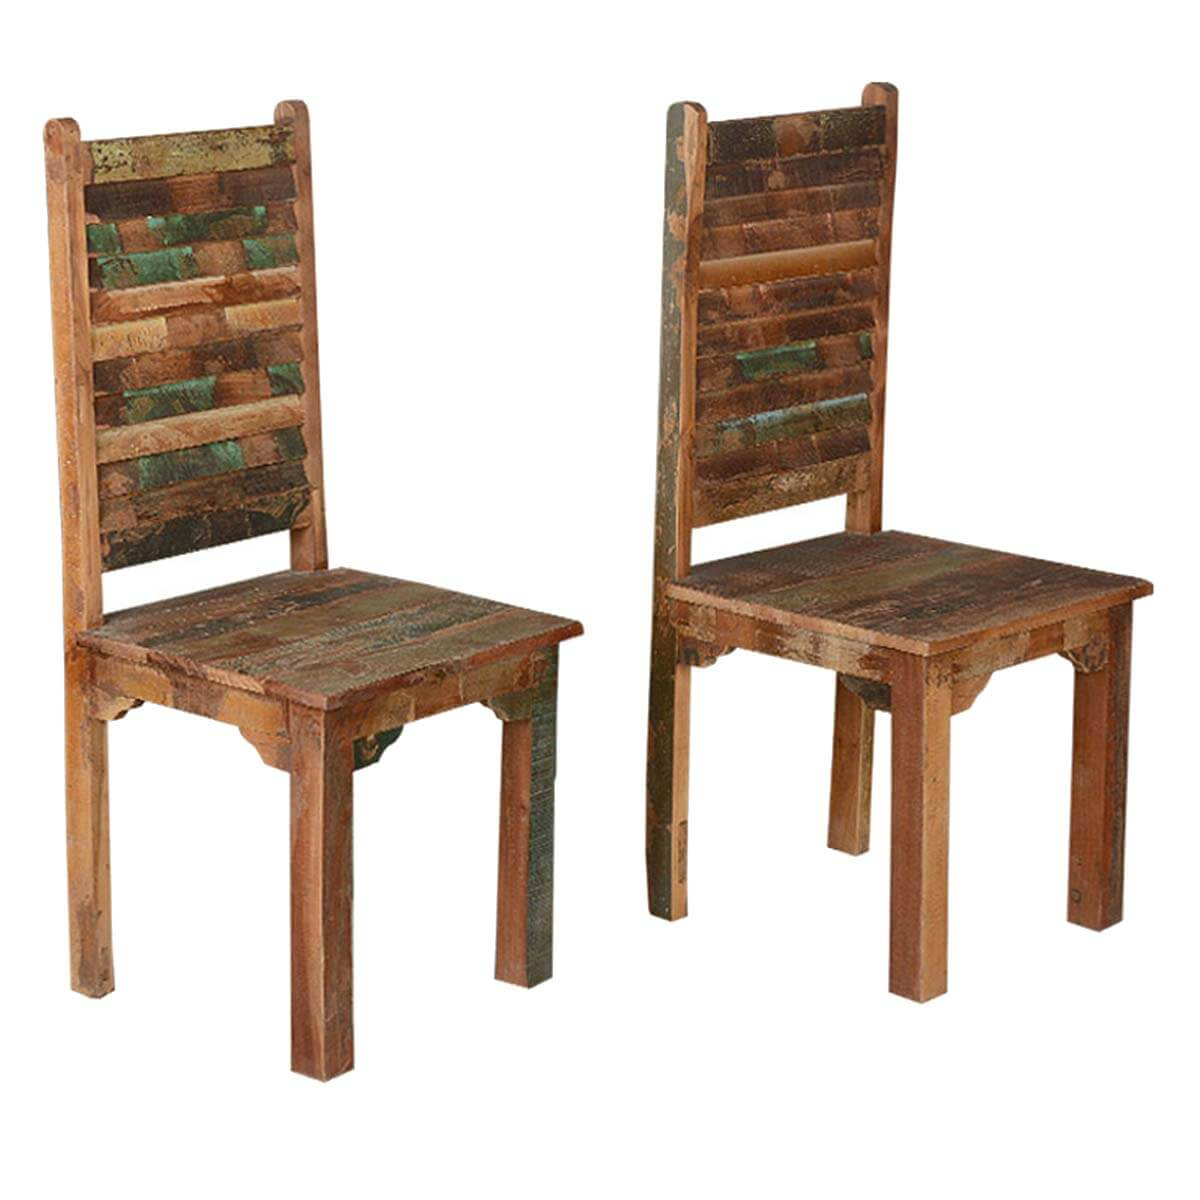 Dining Room Wood Chairs: Rustic Distressed Reclaimed Wood Multi Color Dining Chairs